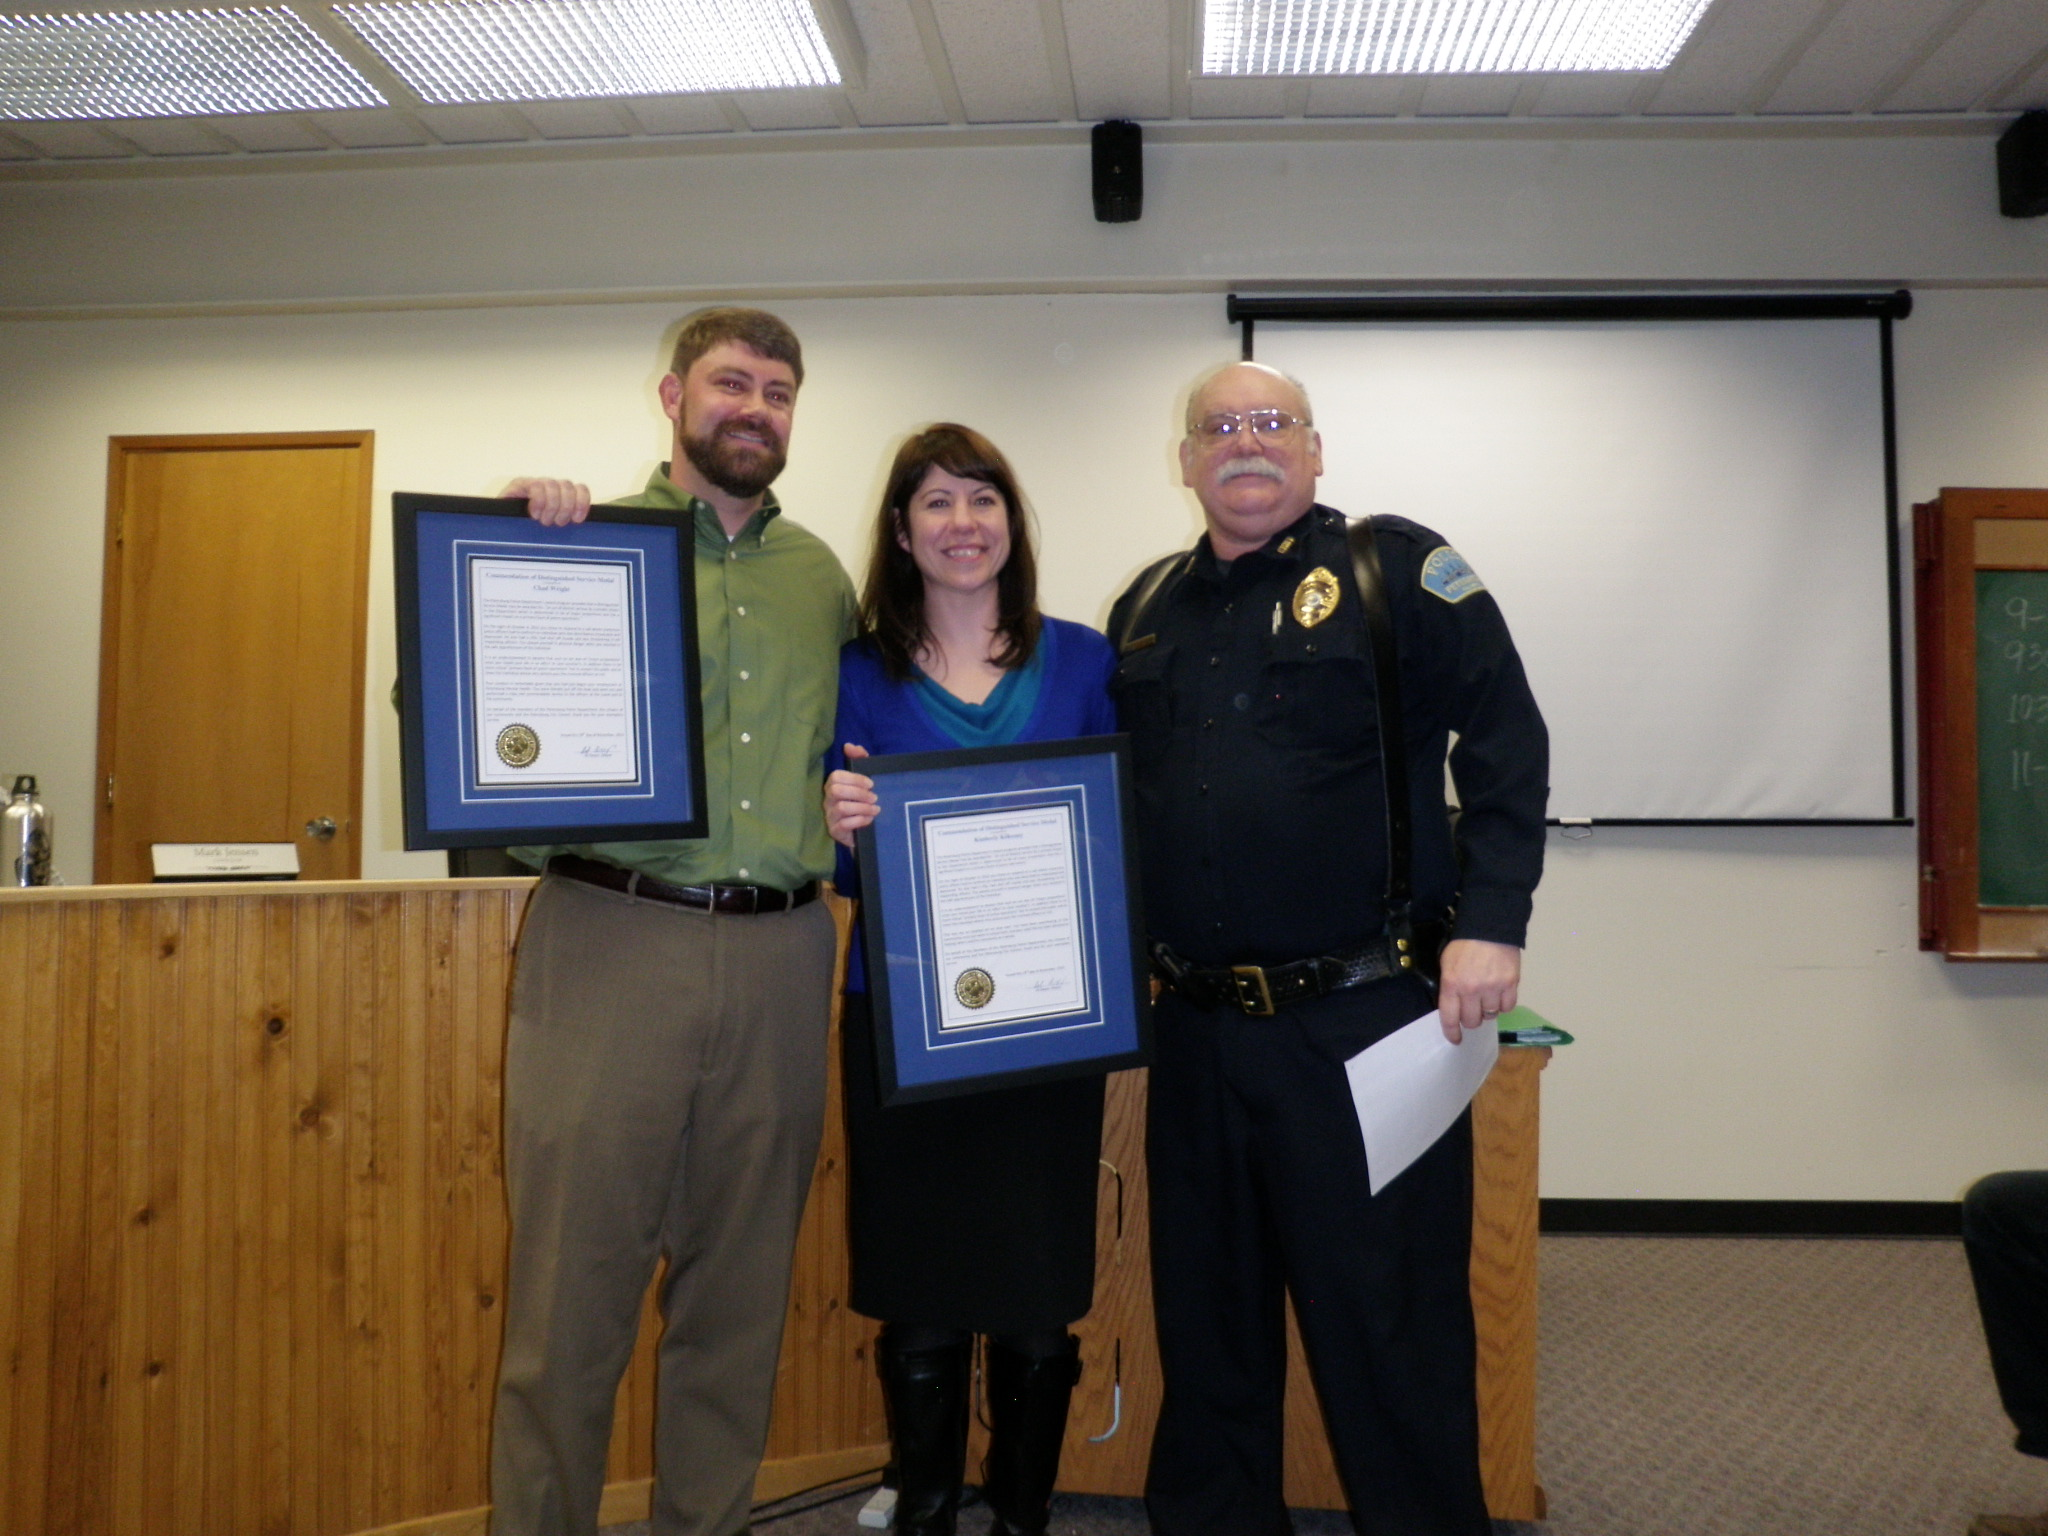 City honors Mental Health workers